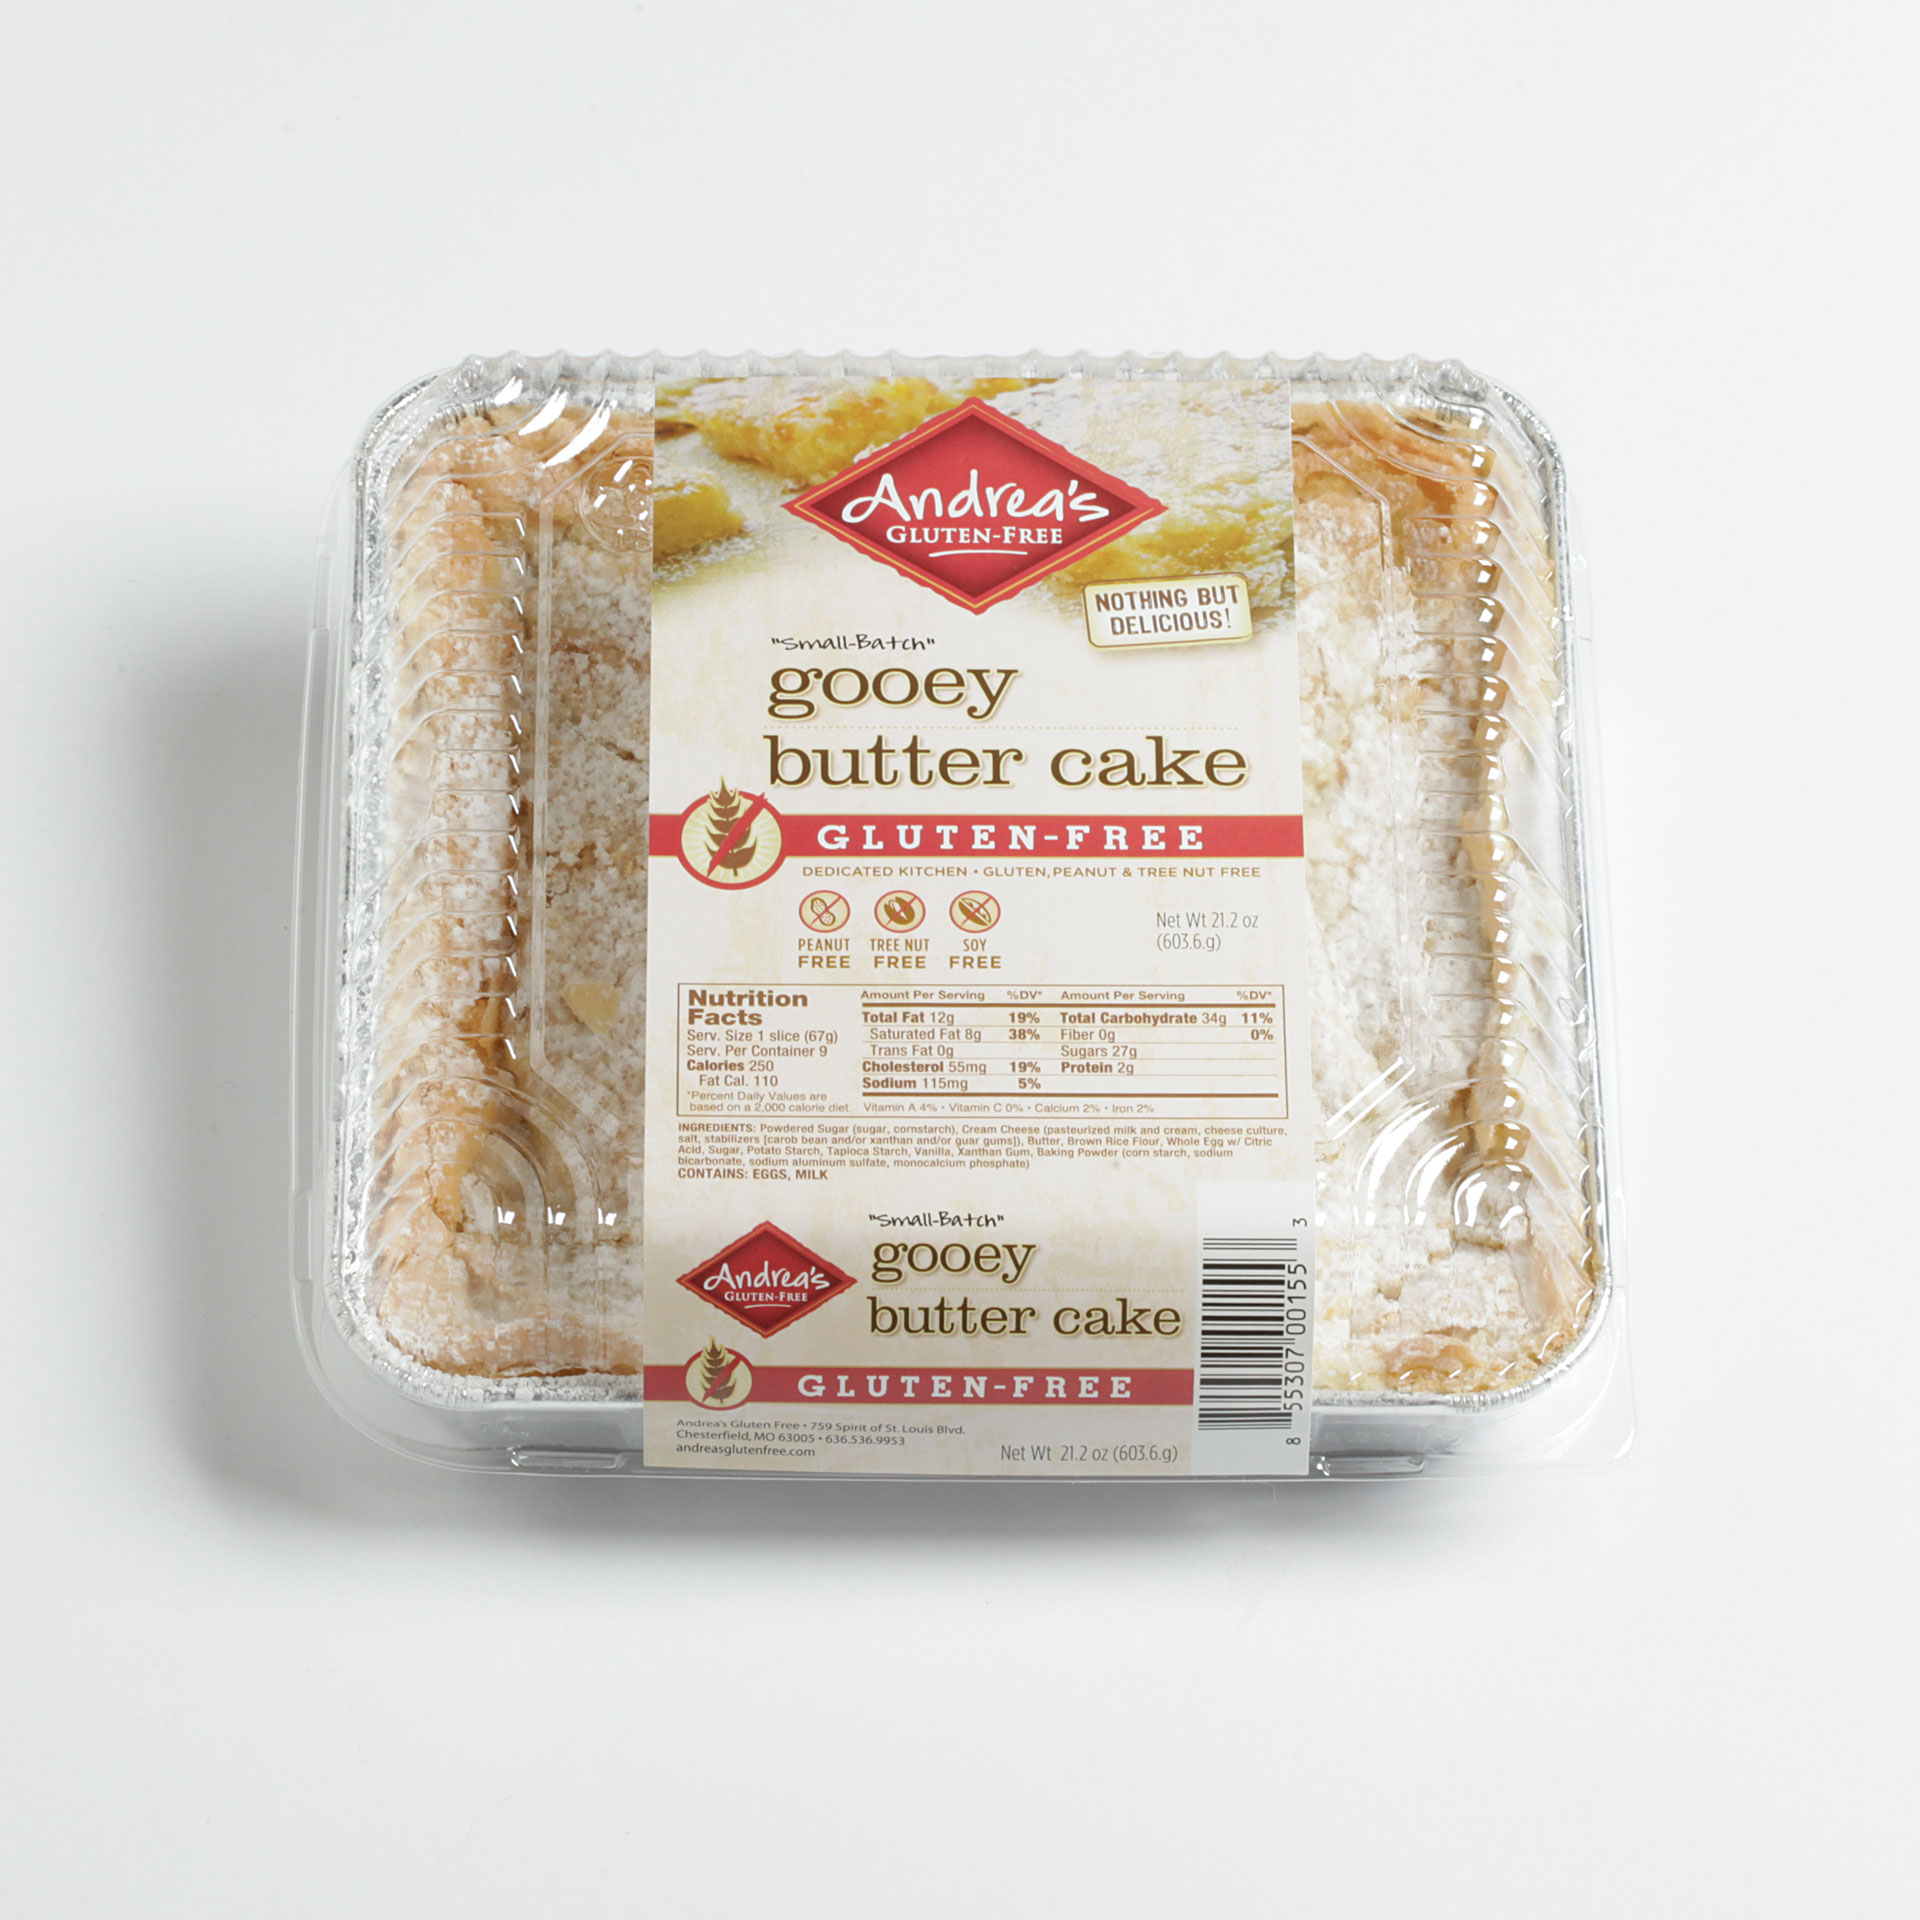 gooey_butter_cake_packaging.jpg